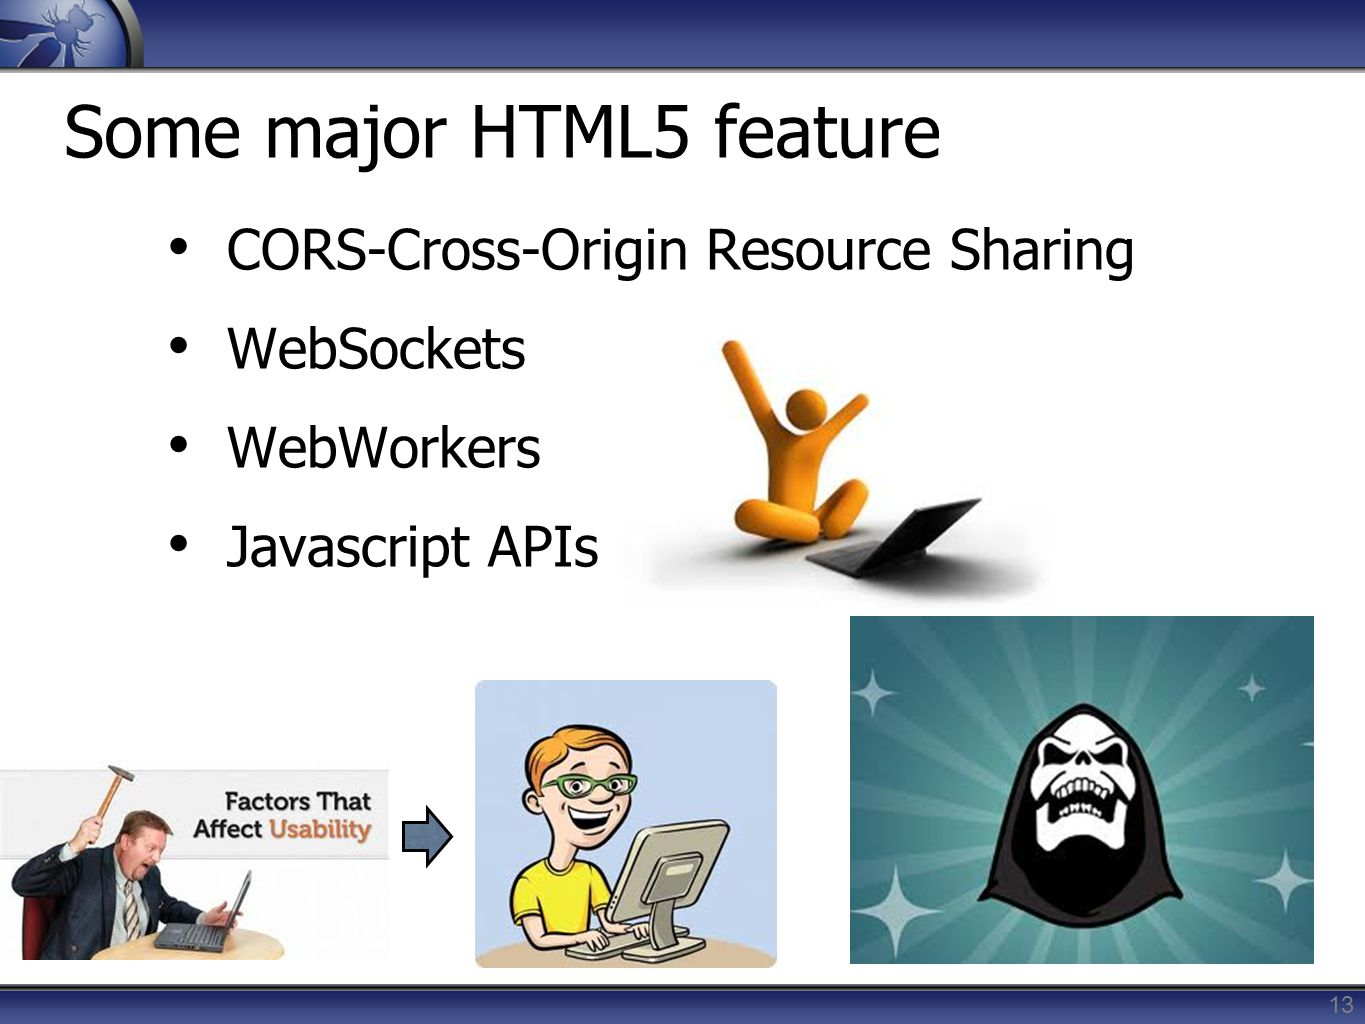 Some major HTML5 feature